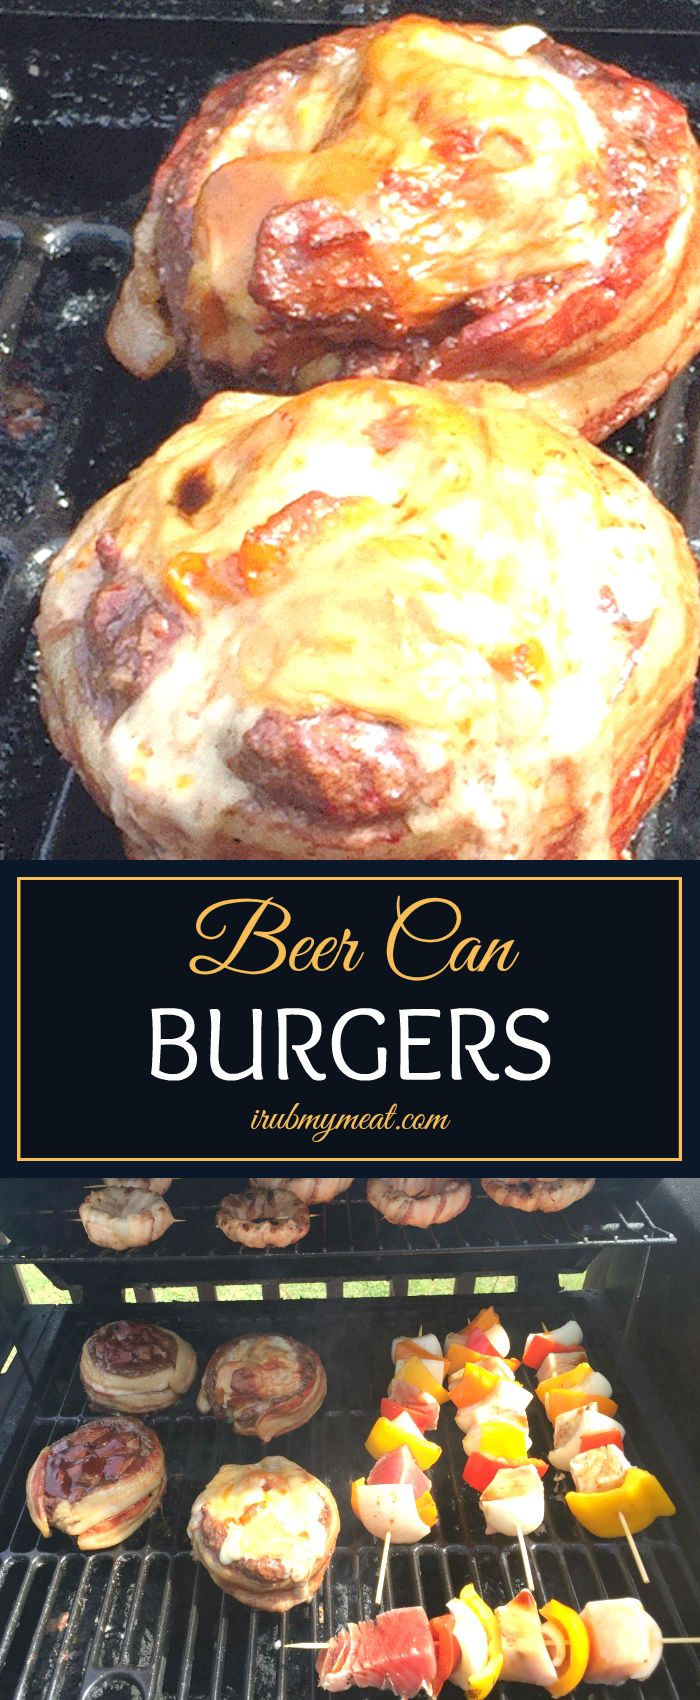 Burgers wrapped in bacon, stuffed with other good stuff.  What's better than that??  Smoked, bacon wrapped burgers full of awesomeness!  irubmymeat.com